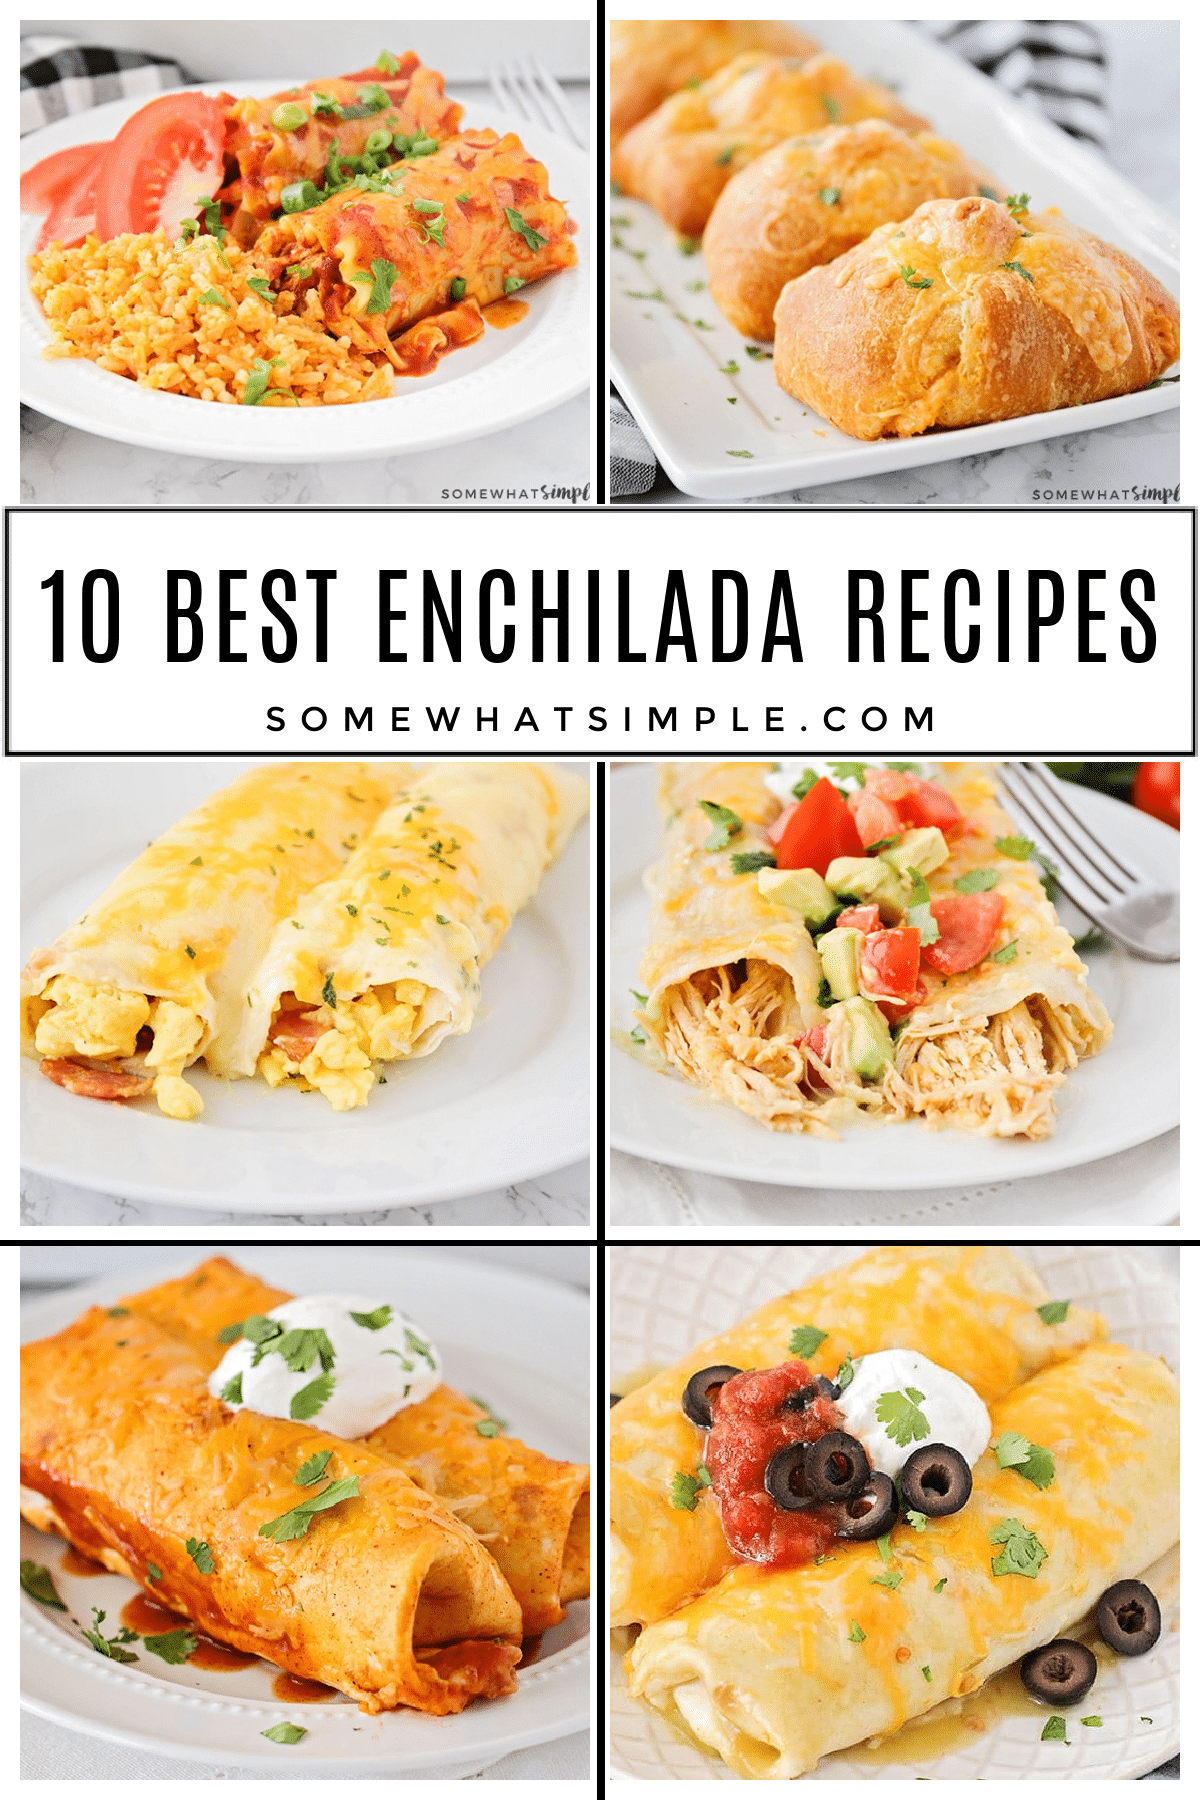 10 of the best enchilada recipes that your family will love! These variations are simple to make and totally delicious! via @somewhatsimple